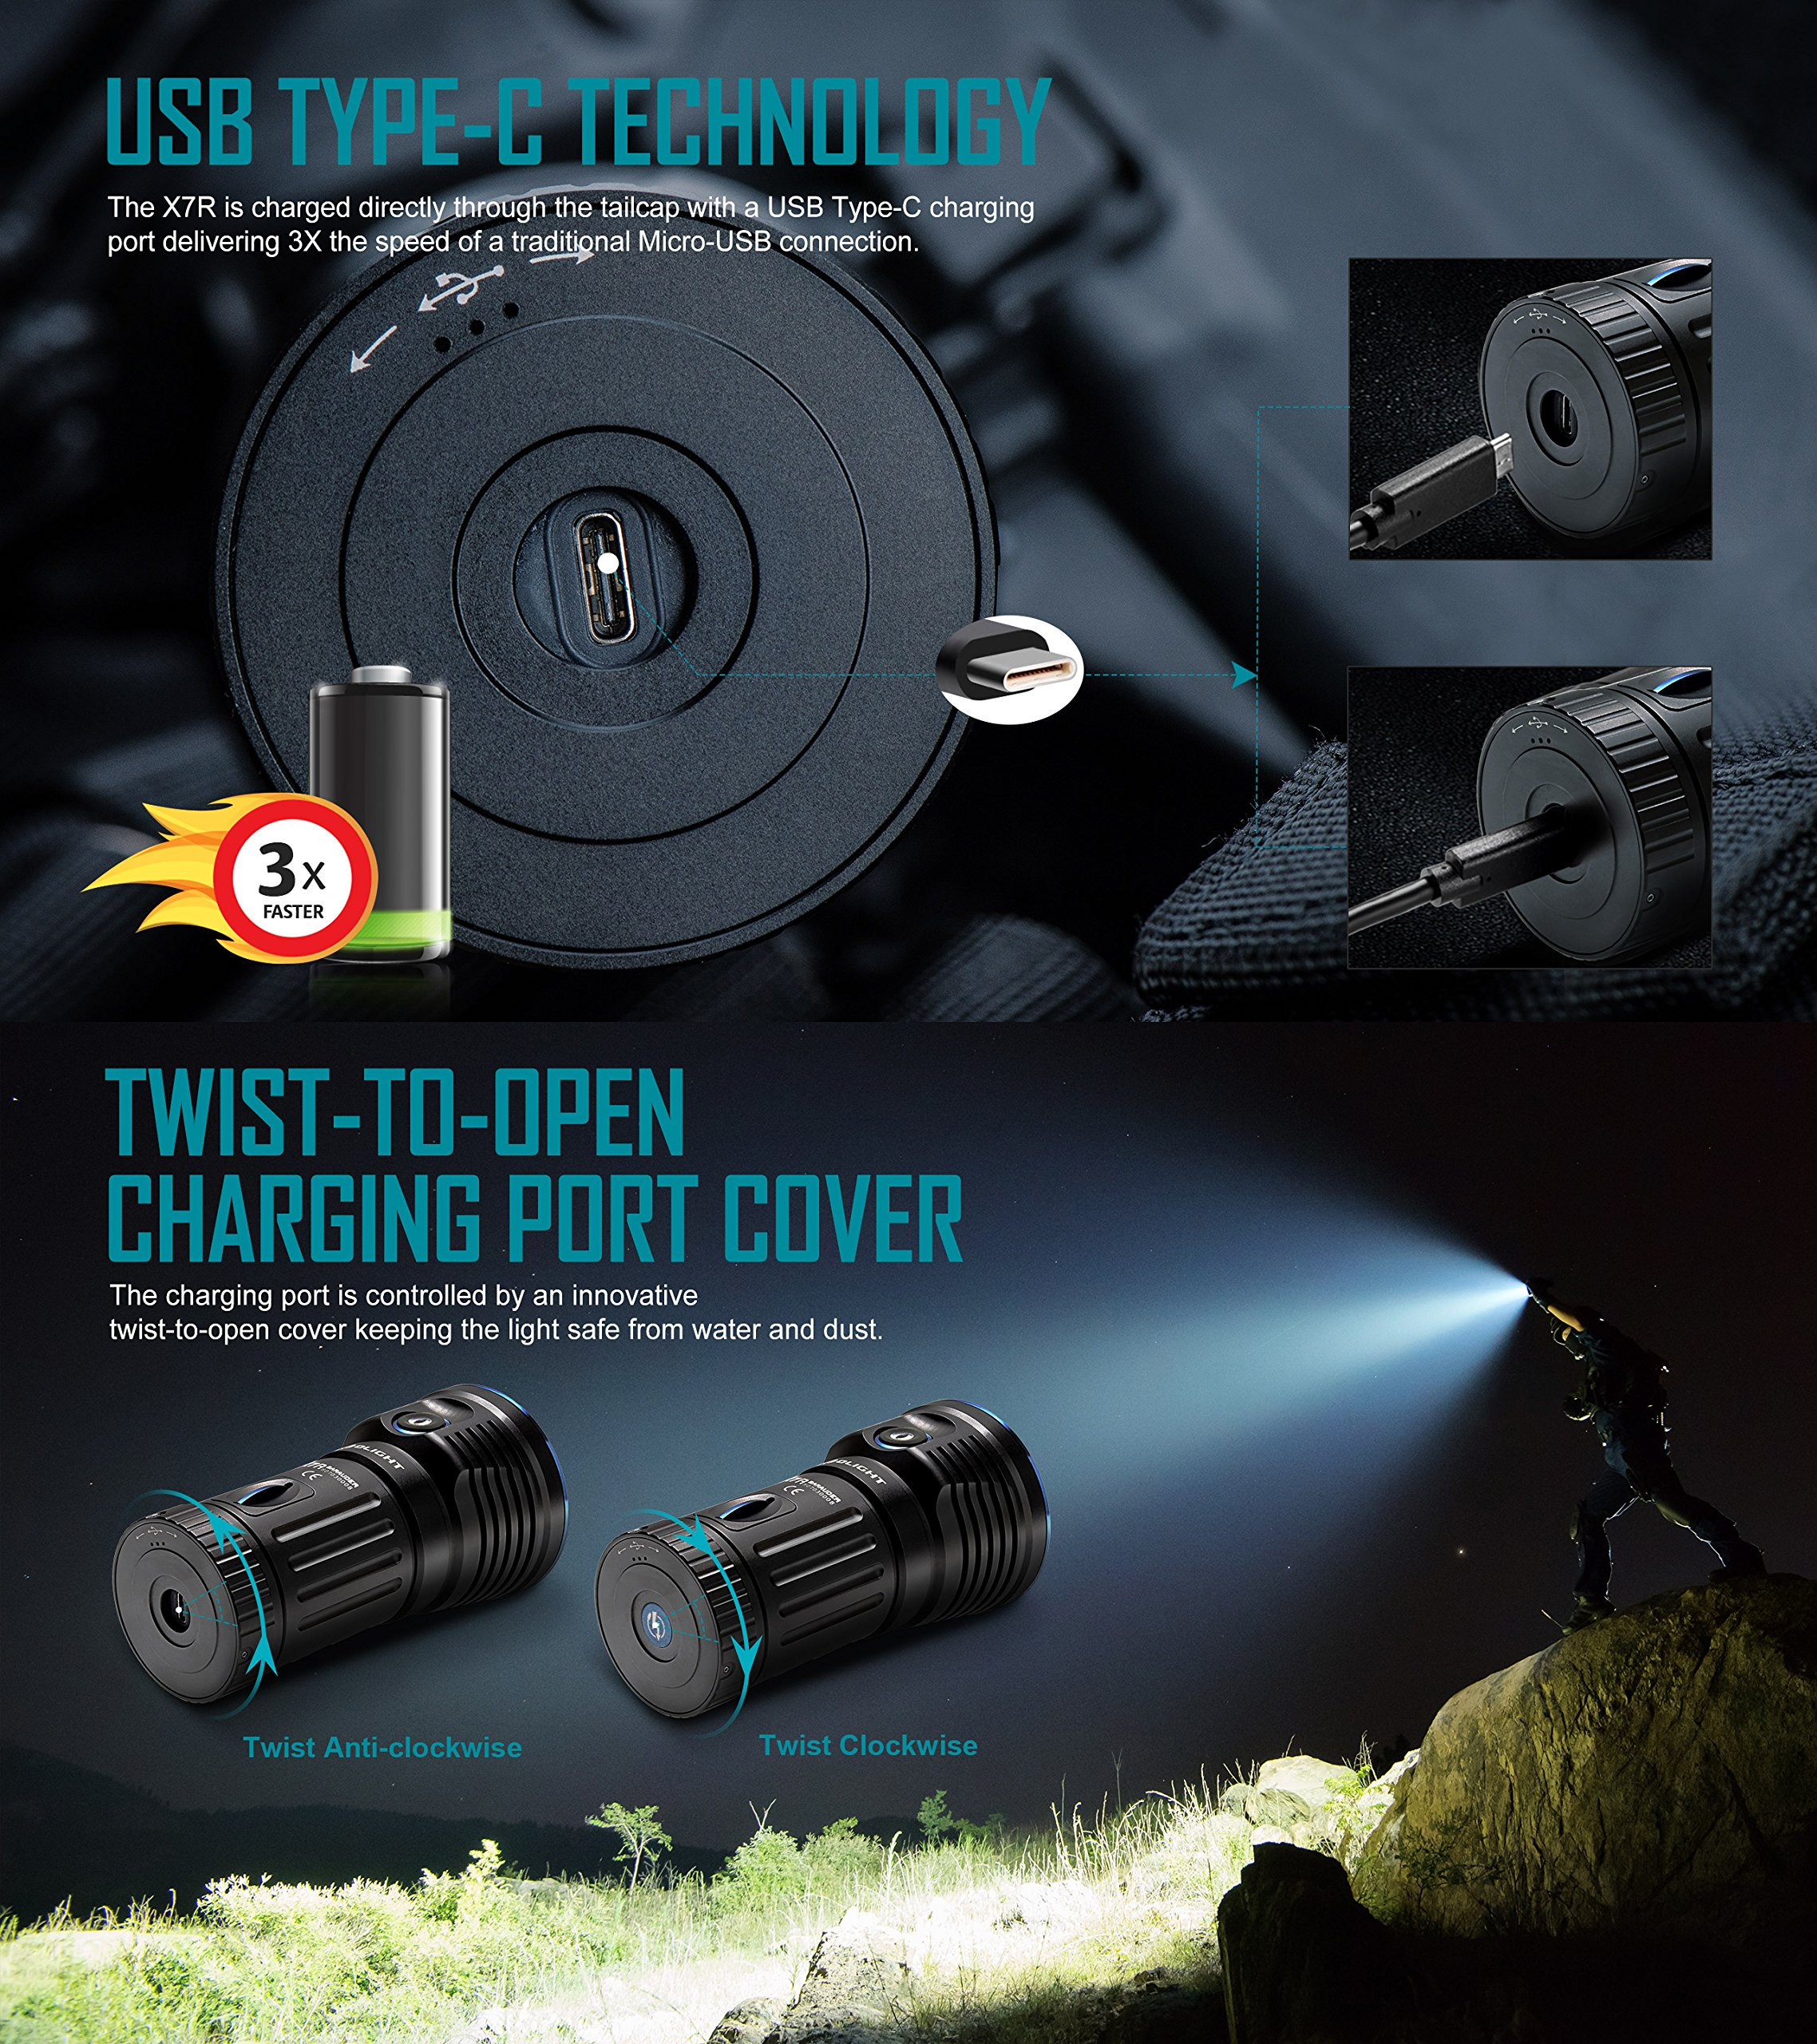 Olight X7R Marauder 12000 Lumens CREE XHP 70 LED USB Rechargeable Flashlight for Camping,Hunting,Searching,with 4 X 18650 Rechargeable Batteries (Built-in) and SKYBEN Accessory by SKYBEN (Image #3)